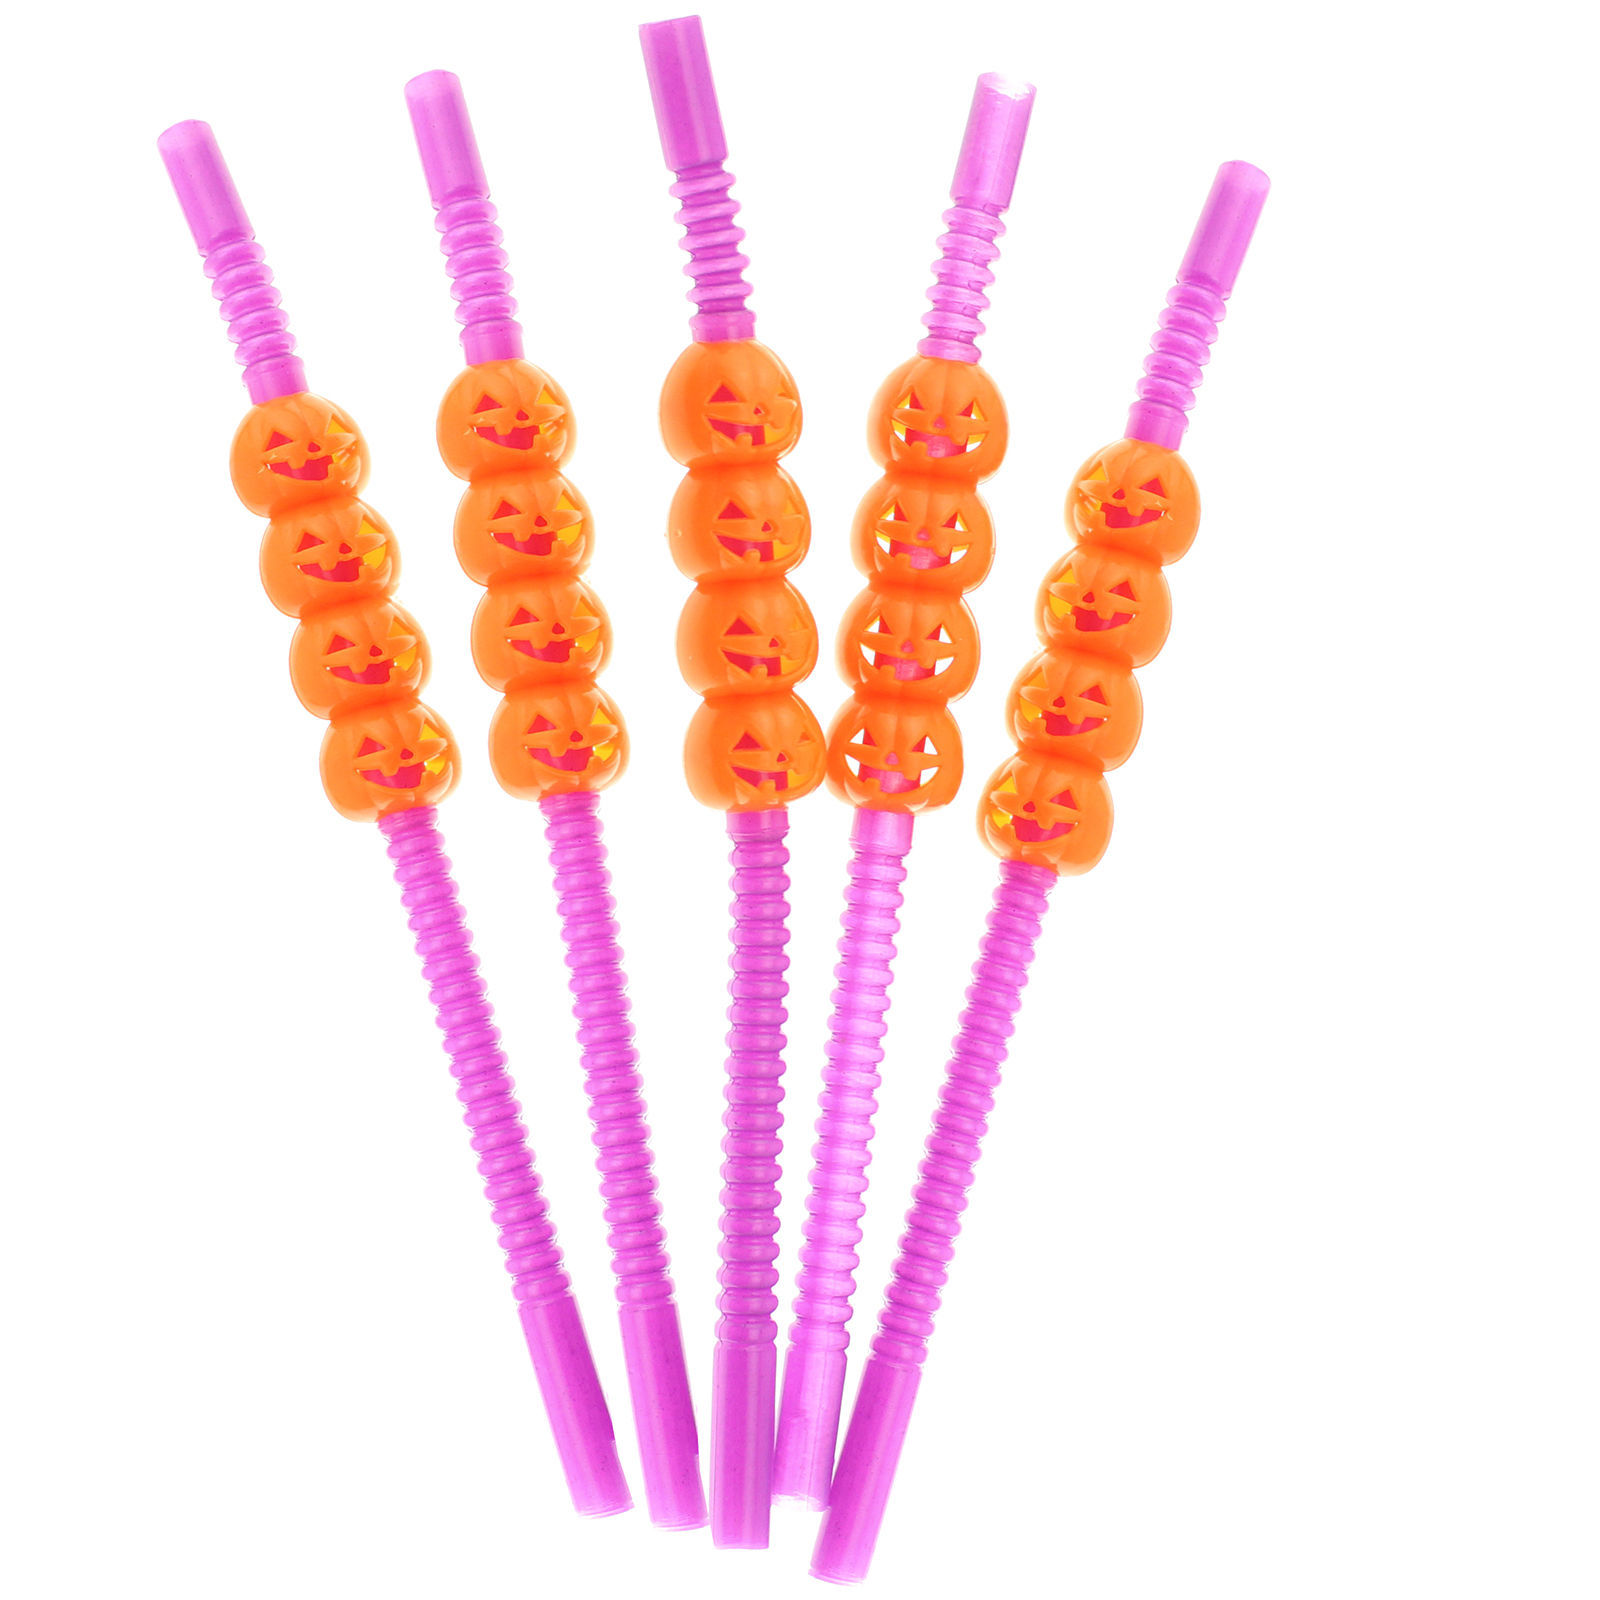 Halloween Party Orange Pumpkin Drinking Straws Spooky Festive Decorations Favors